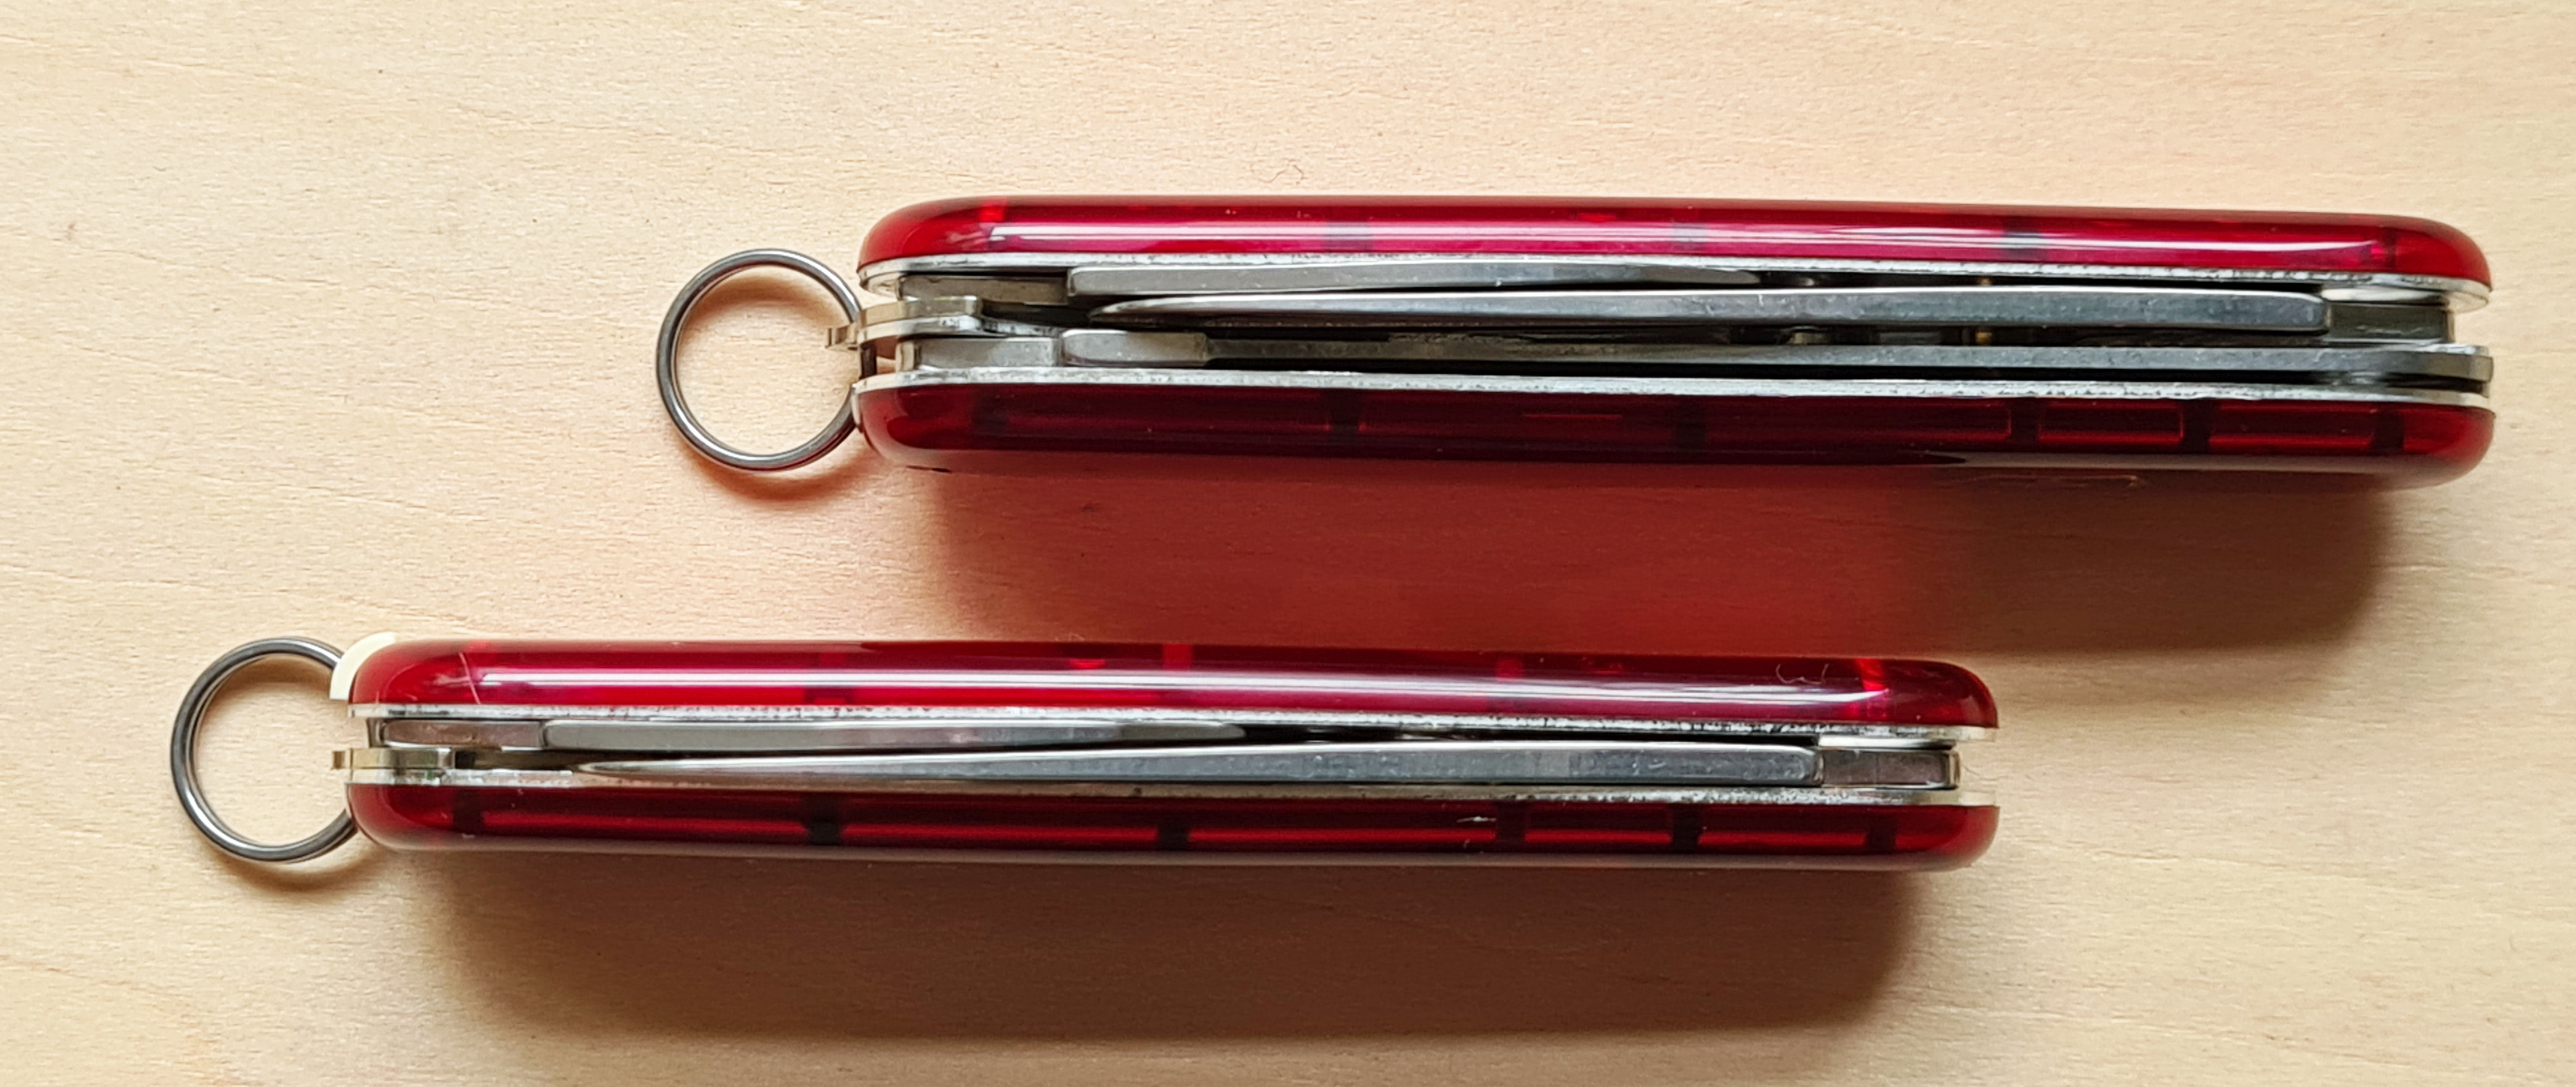 Thickness of single and double layer My First Victorinox compared